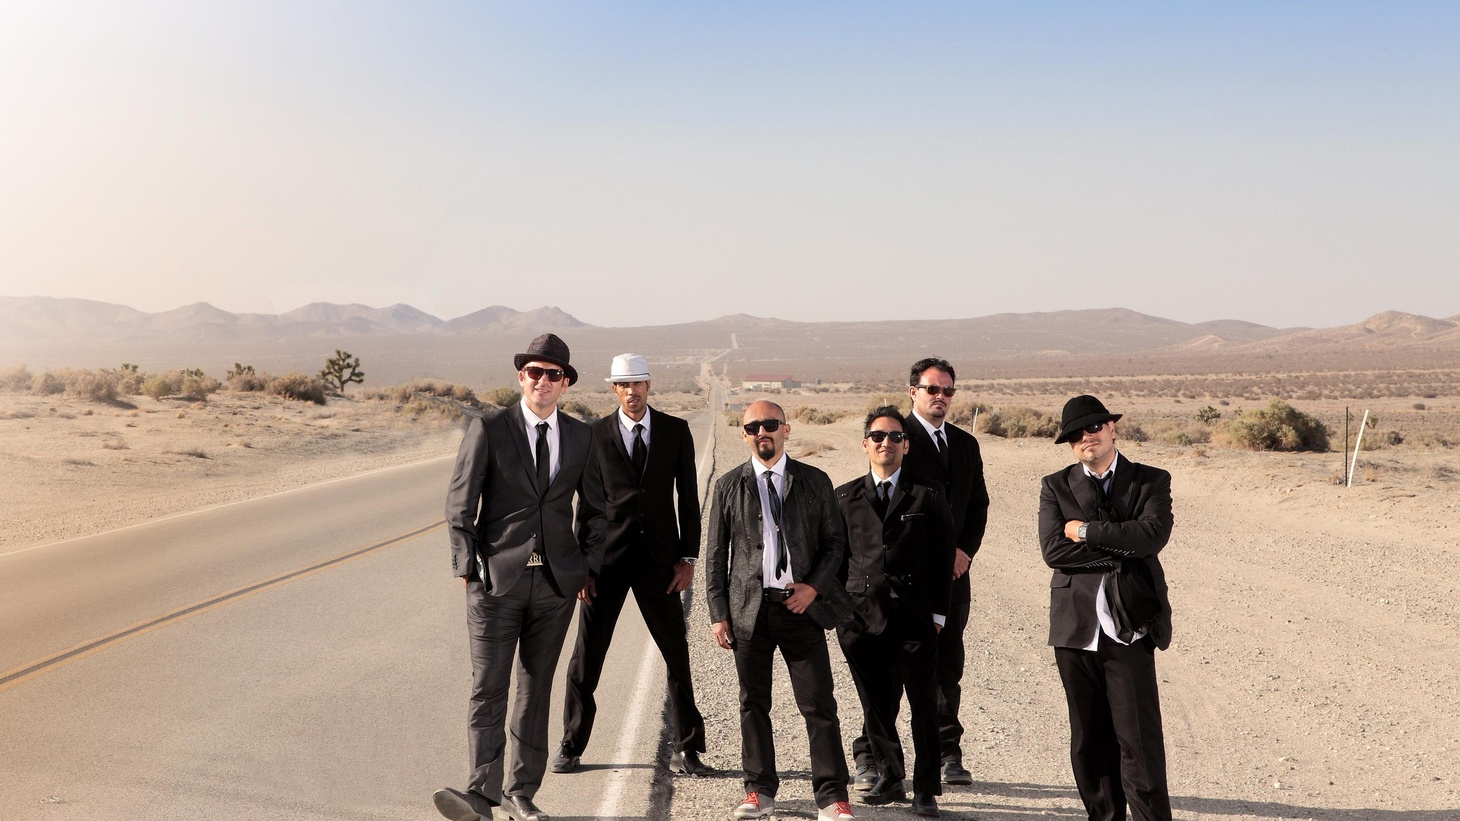 We've been looking forward to a new album from Ozomatli, a band that has always captured the aesthetic of the cultural melting pot that is LA.